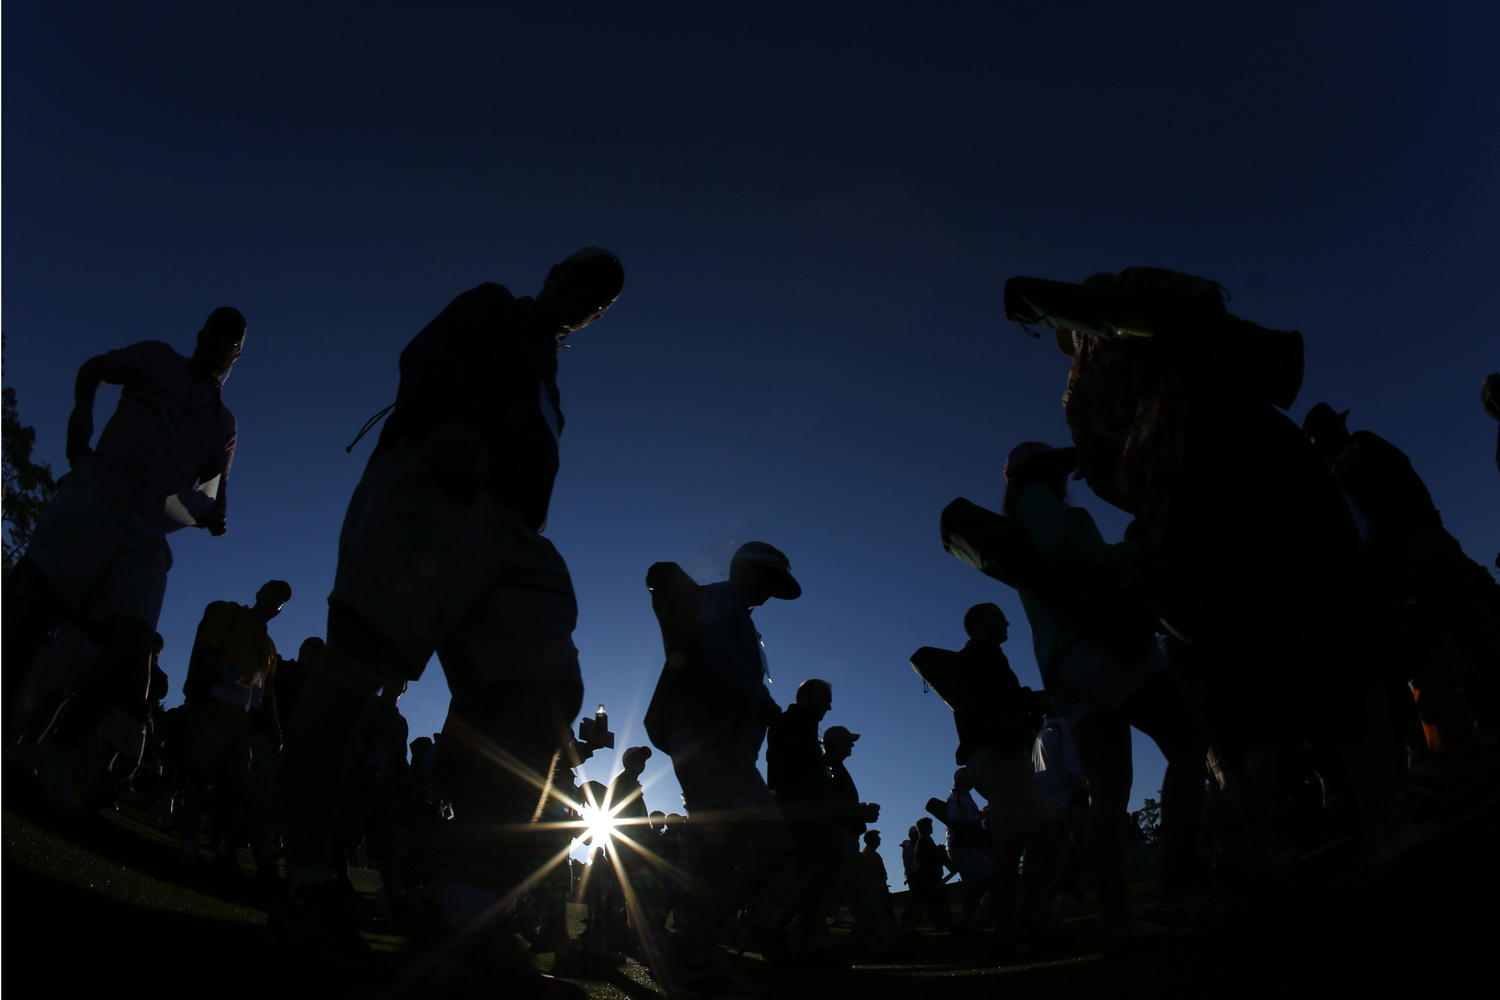 Apr. 10, 2014. Spectators make their way down the first fairway at sunrise for the first round of the Masters golf tournament in Augusta, Ga.